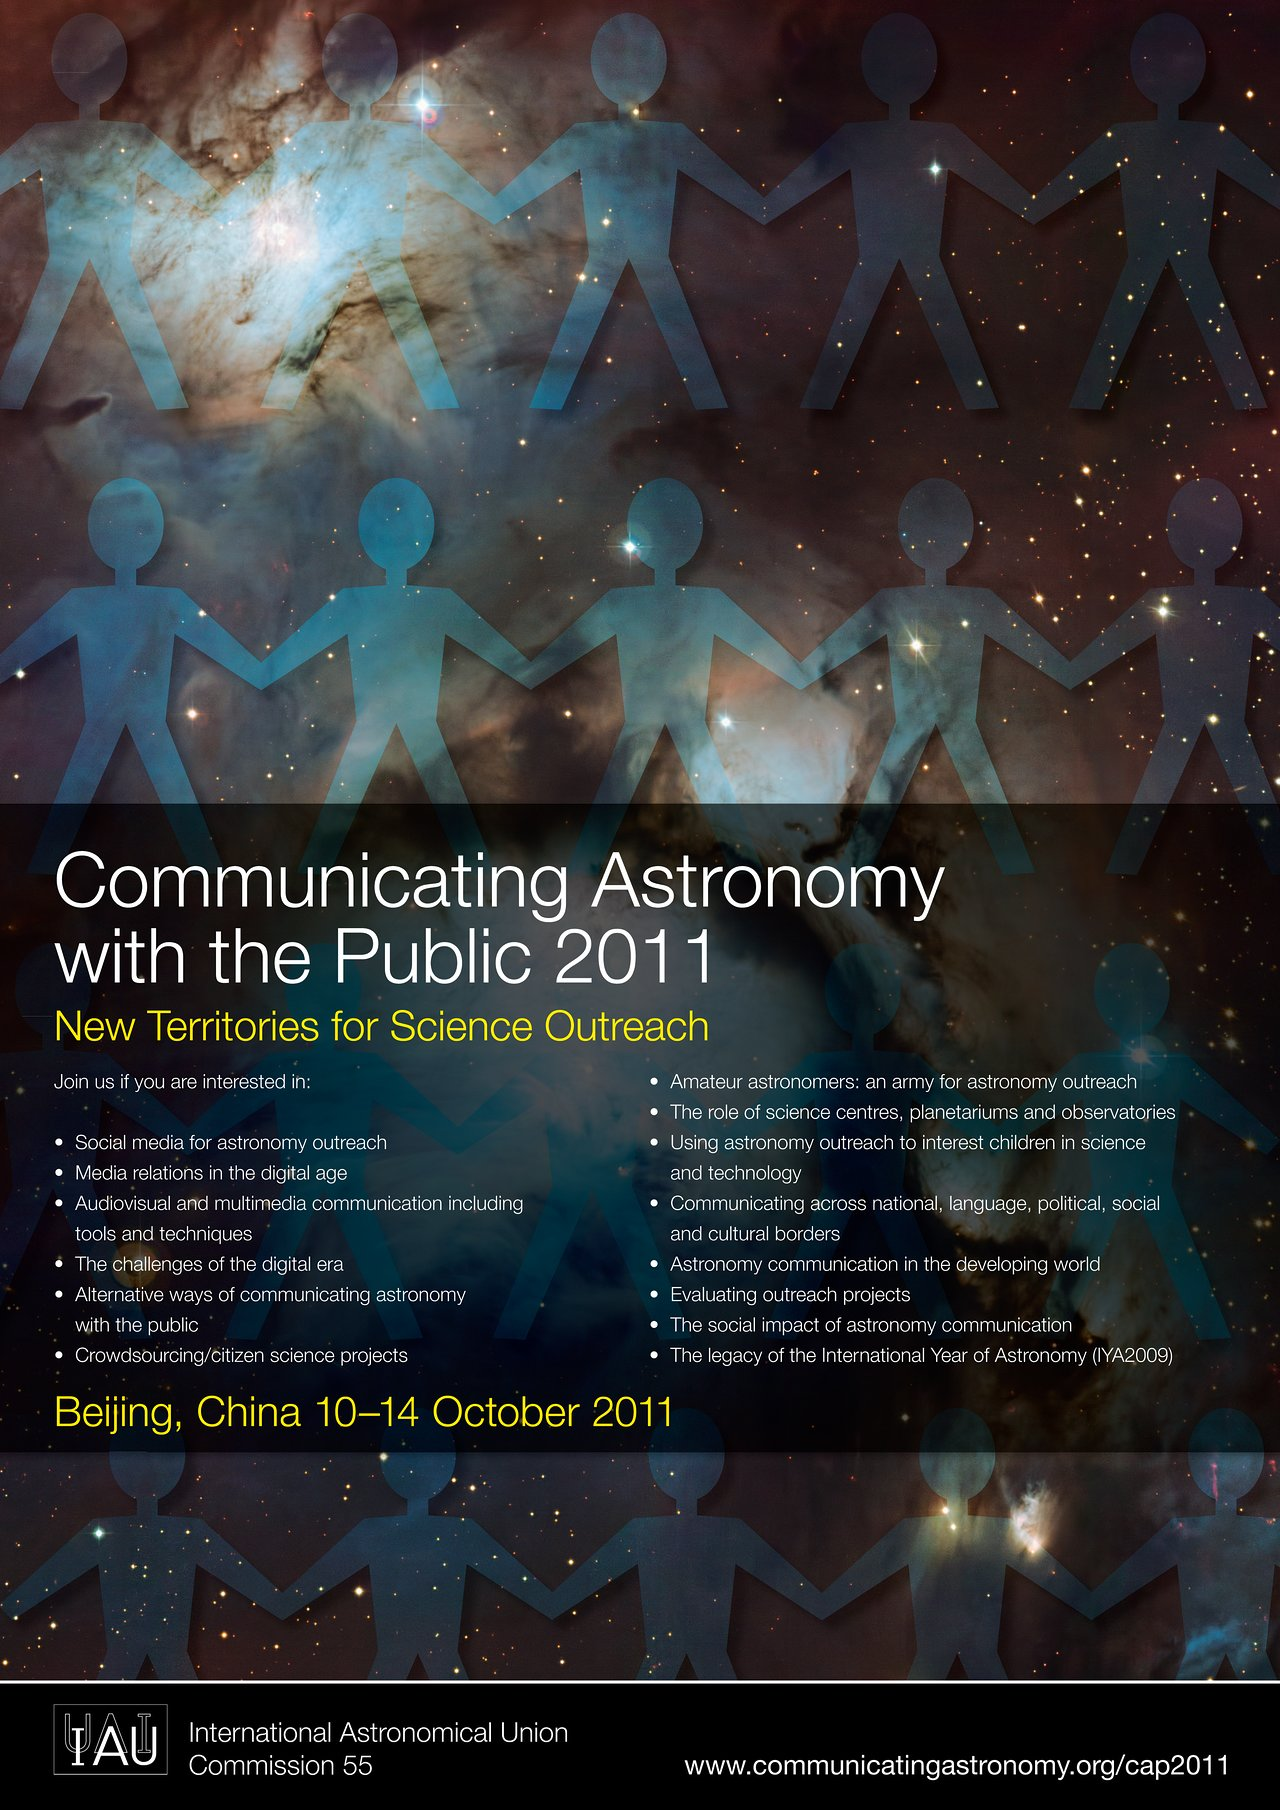 Communicating Astronomy with the Public 2011 (CAP 2011)